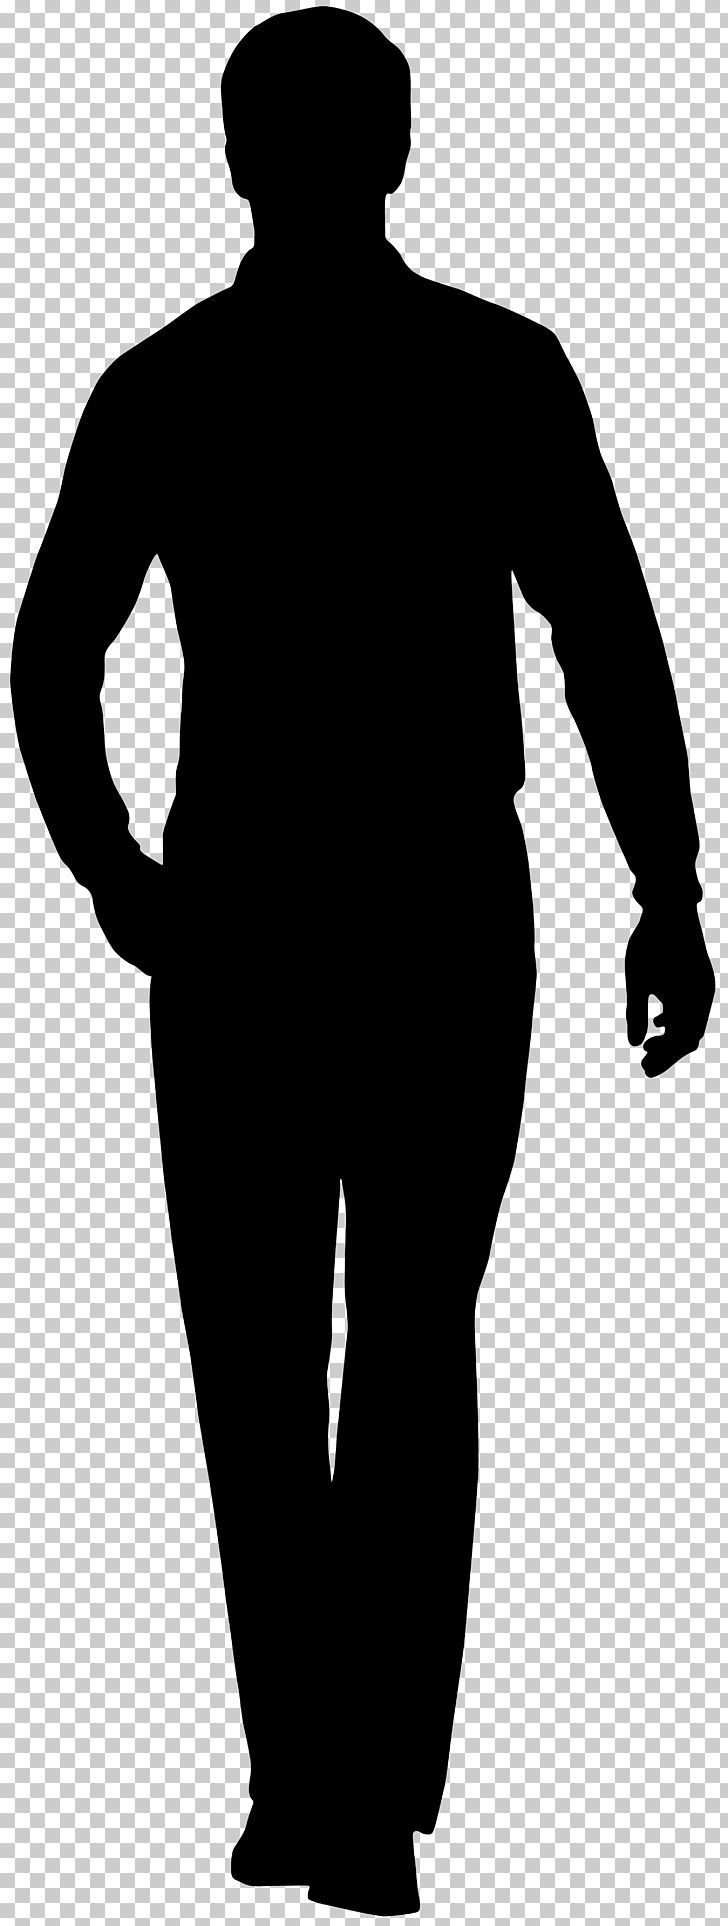 Silhouette PNG, Clipart, Art, Black, Black And White, Clip Art, Clipart Free PNG Download